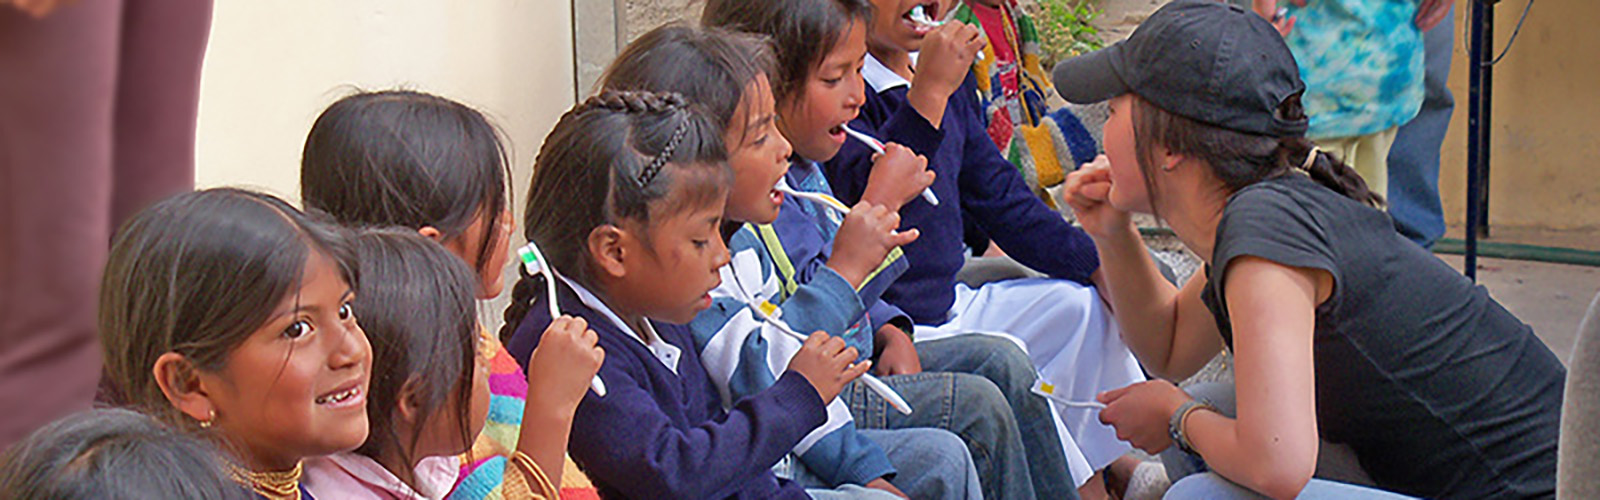 Ecuador children are learning to brush their teeth while sitting in a row, with a UW woman student in front of them showing them how.